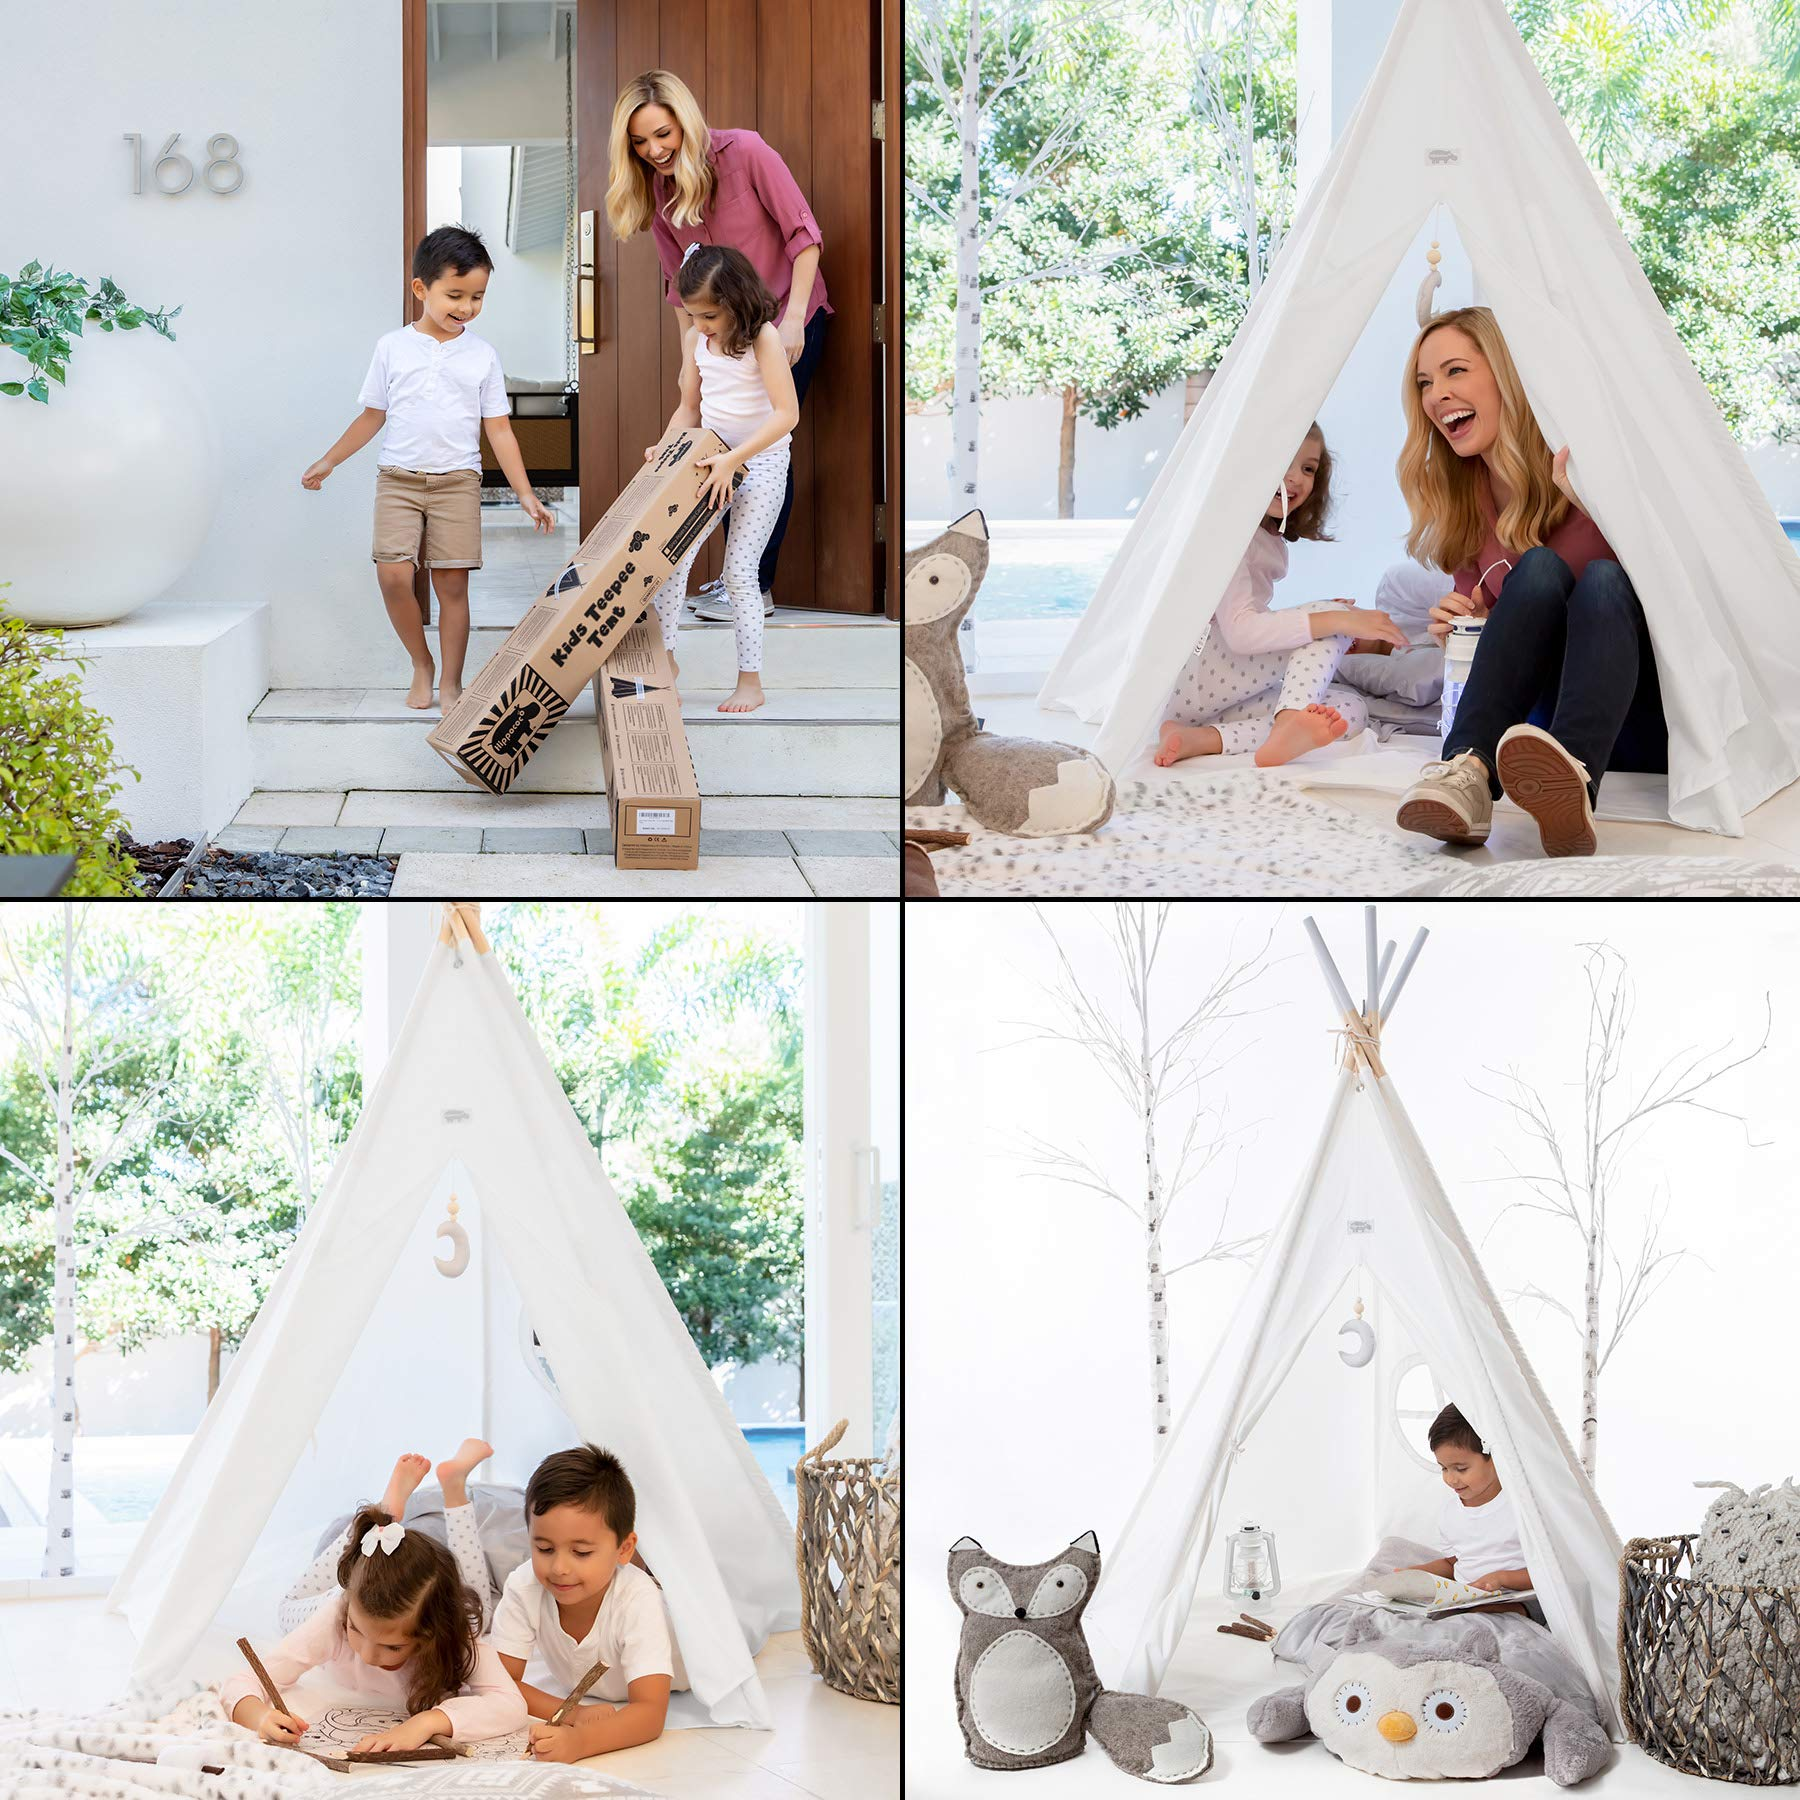 Hippococo Teepee Tent for Kids: Large Sturdy Quality 5 Poles Play House Foldable Indoor Outdoor Tipi Tents, True White Canvas, Floor Mat, Grey Moon Accessory, Family Fun Crafts eBook Included (Grey) by Hippococo (Image #3)